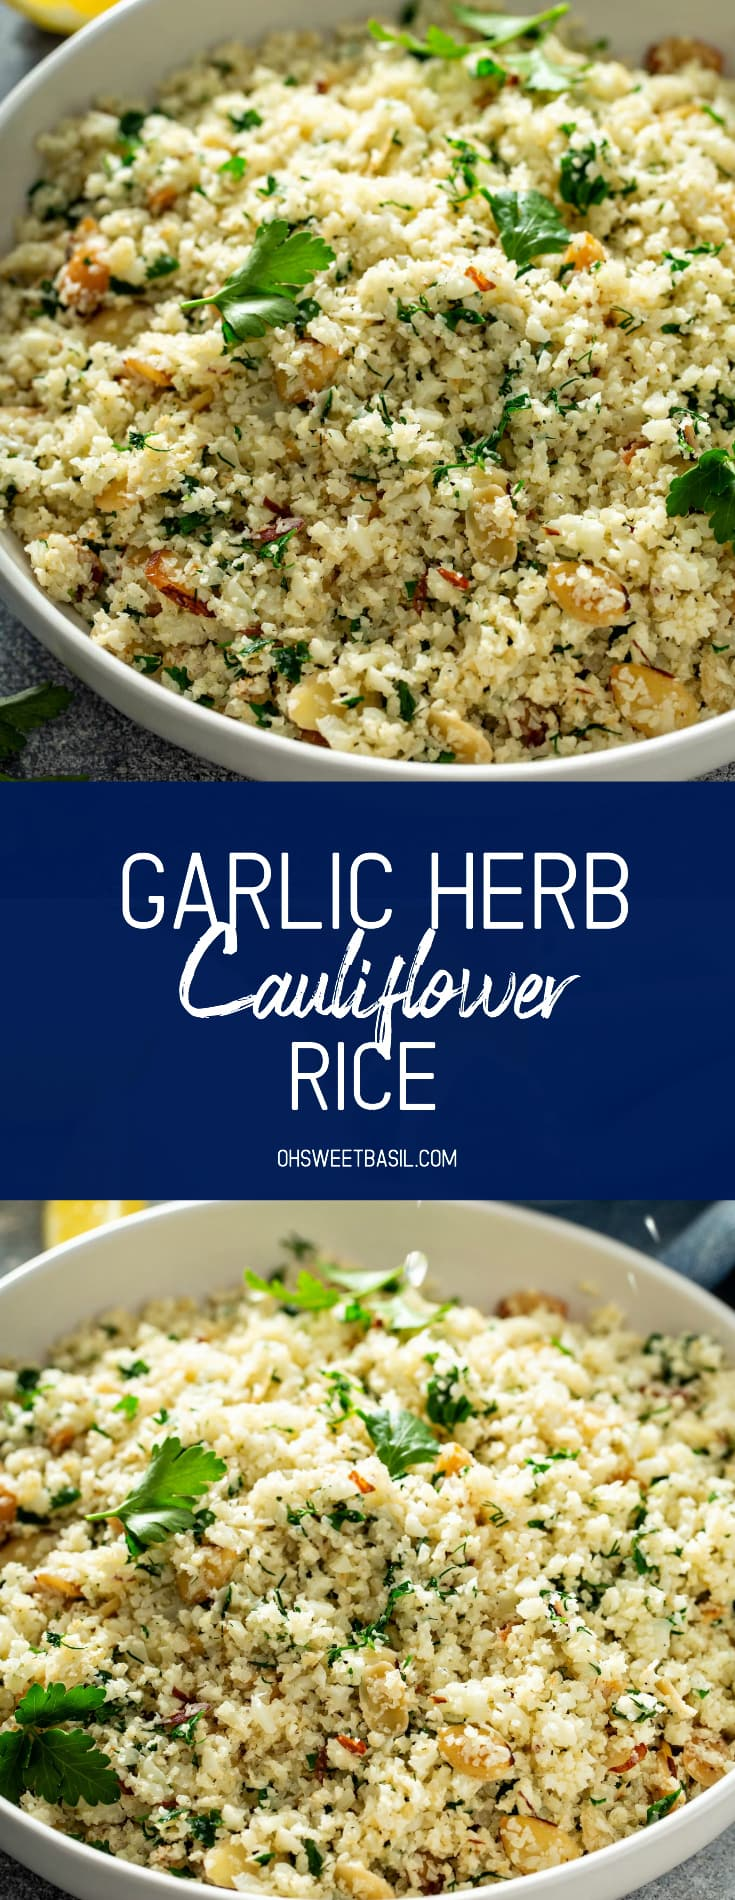 A serving bowl filled with garlic herb cauliflower rice. You can see the green herbs in the rice and there is a wooden spoon filled with cauliflower rice resting in the bowl.